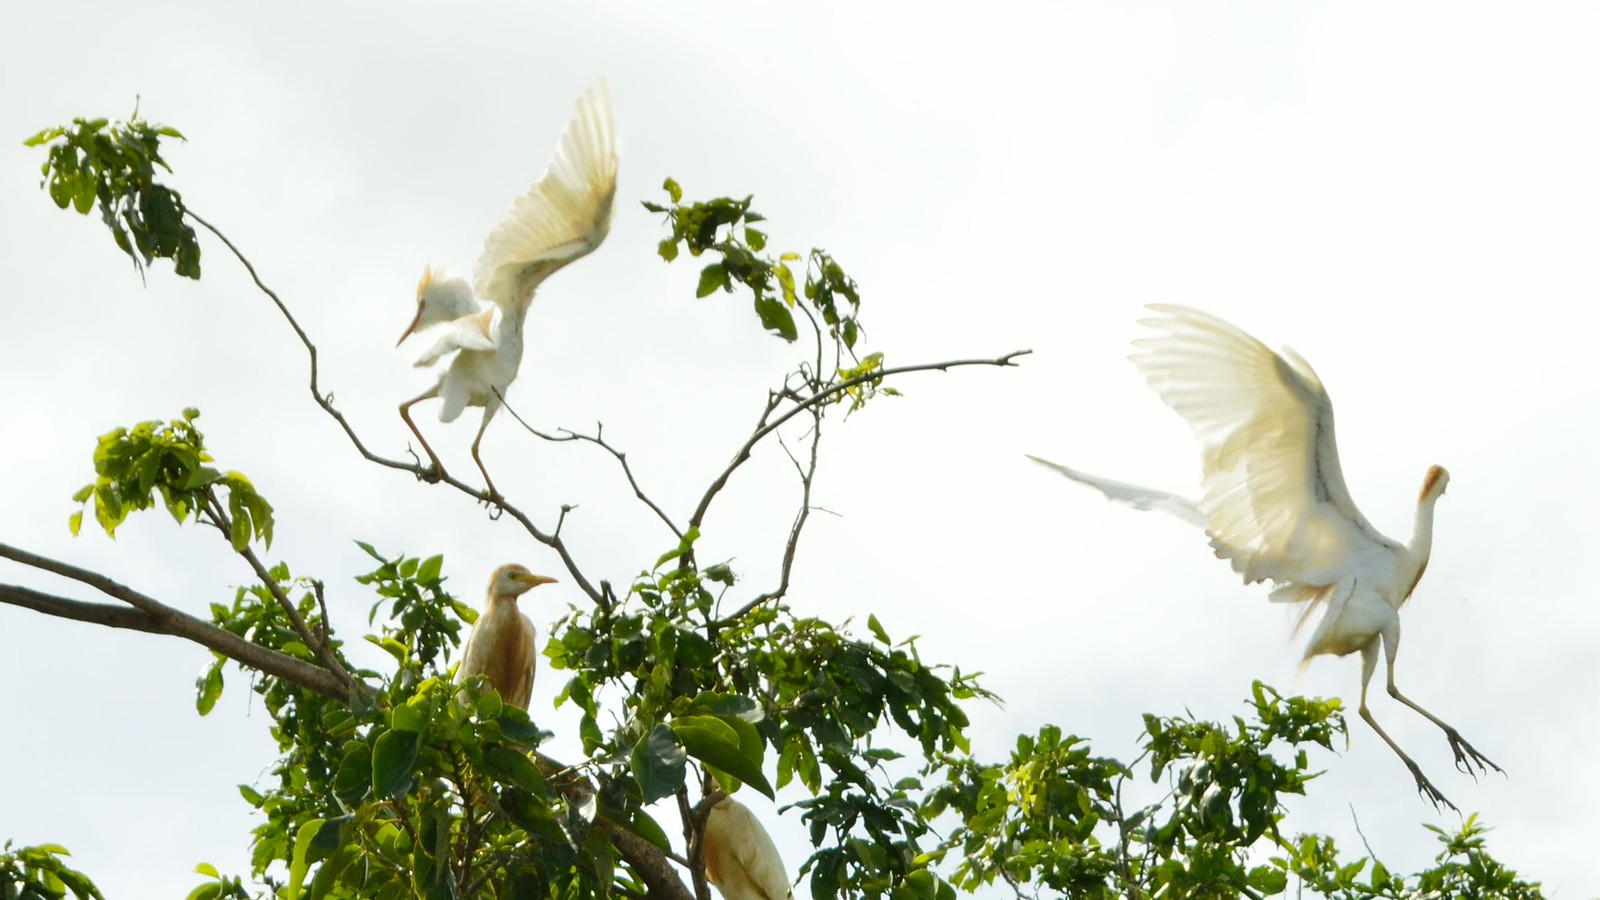 Cattle egret community